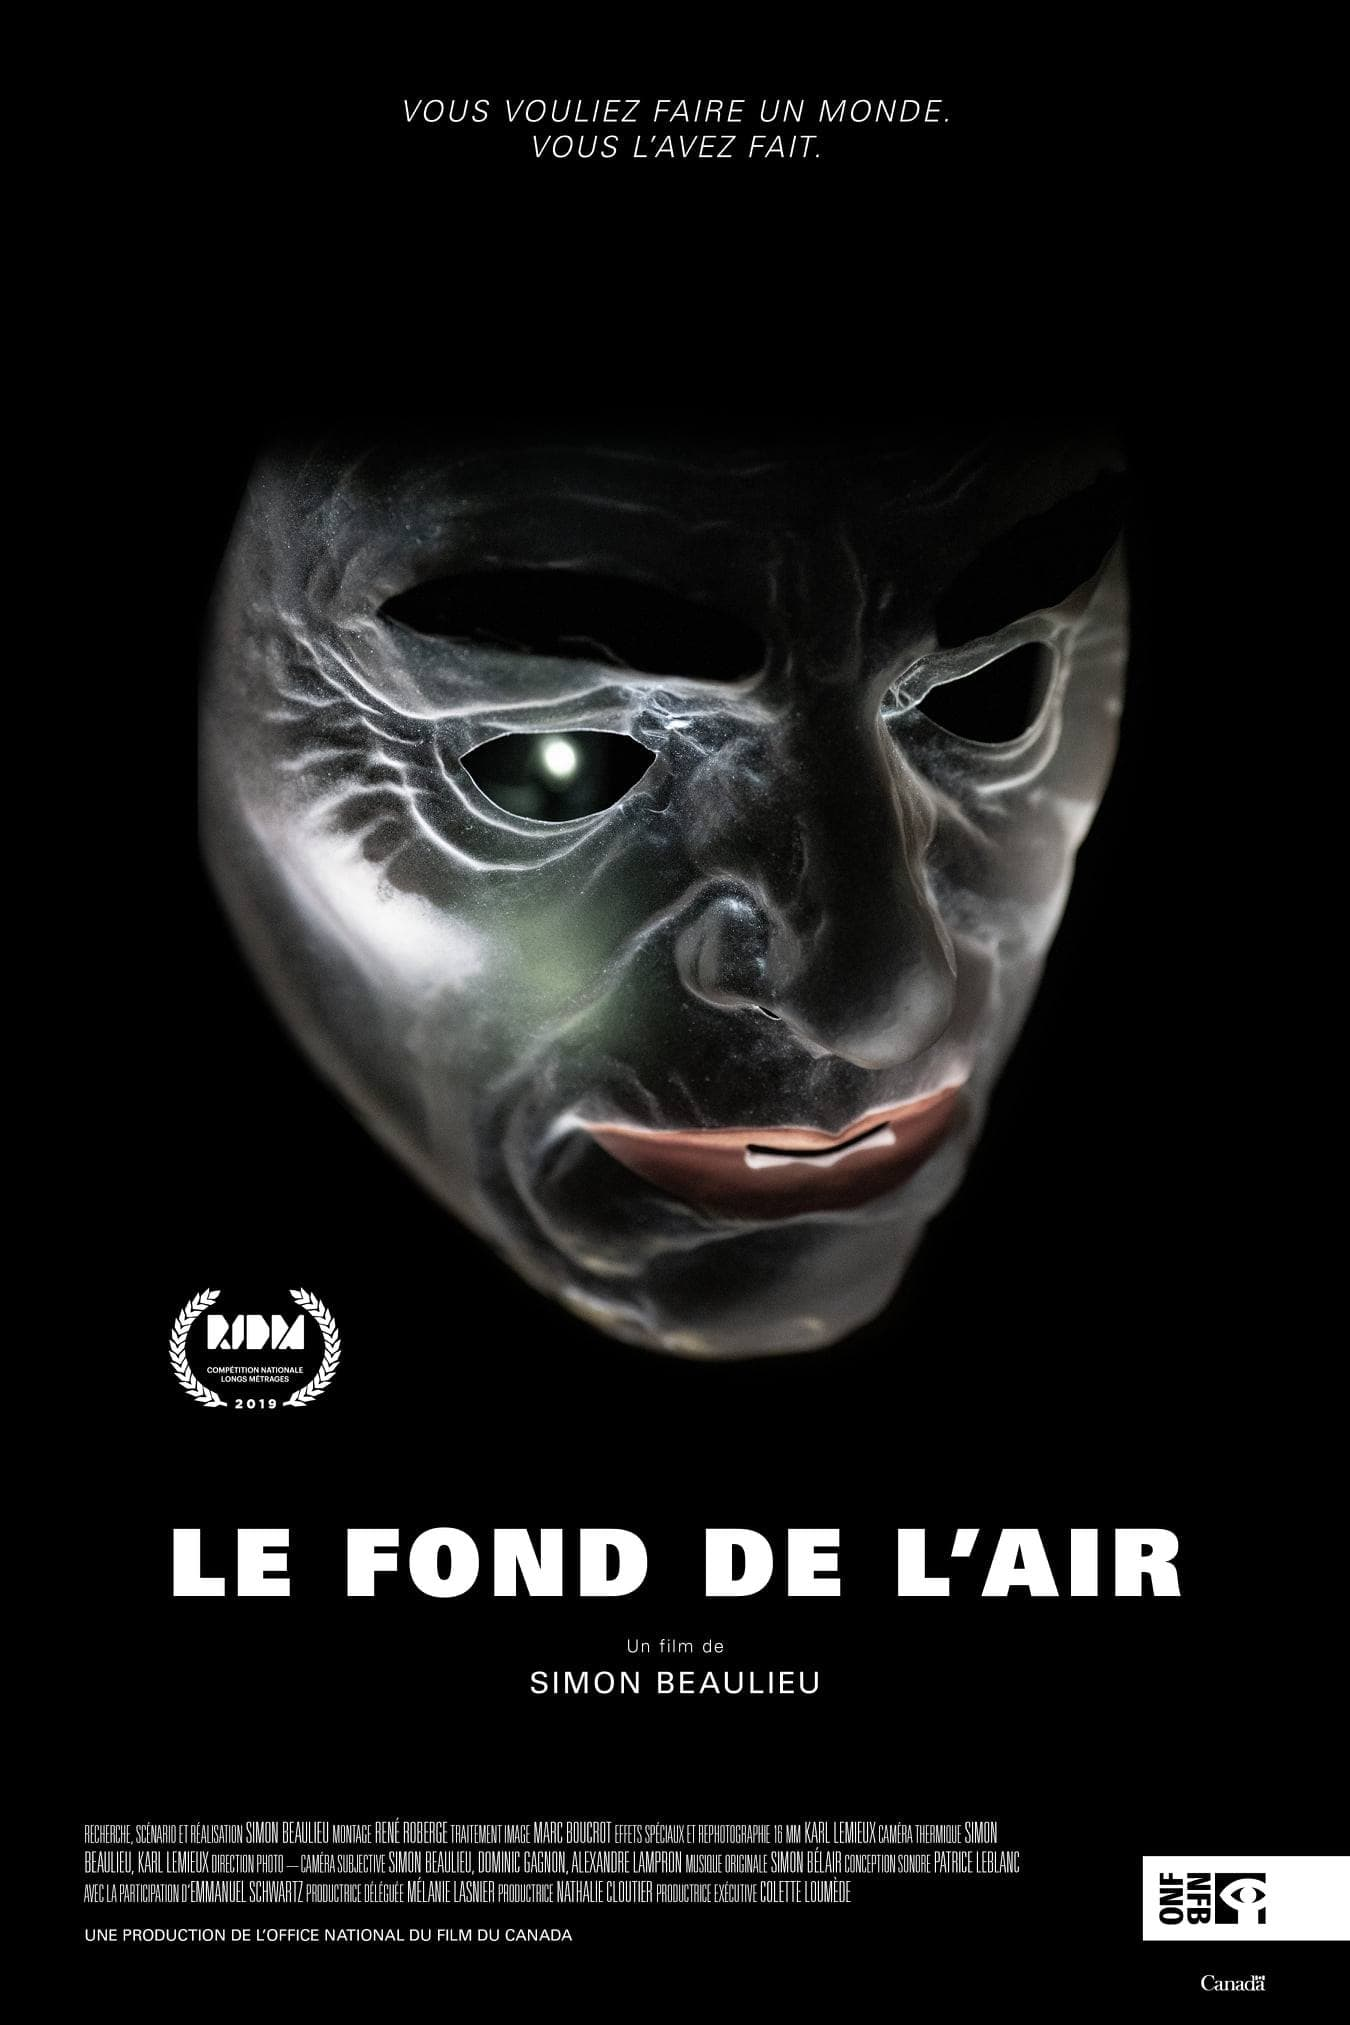 Film A Fond Streaming : streaming, L'air, French, Movie, Streaming, Online, Watch